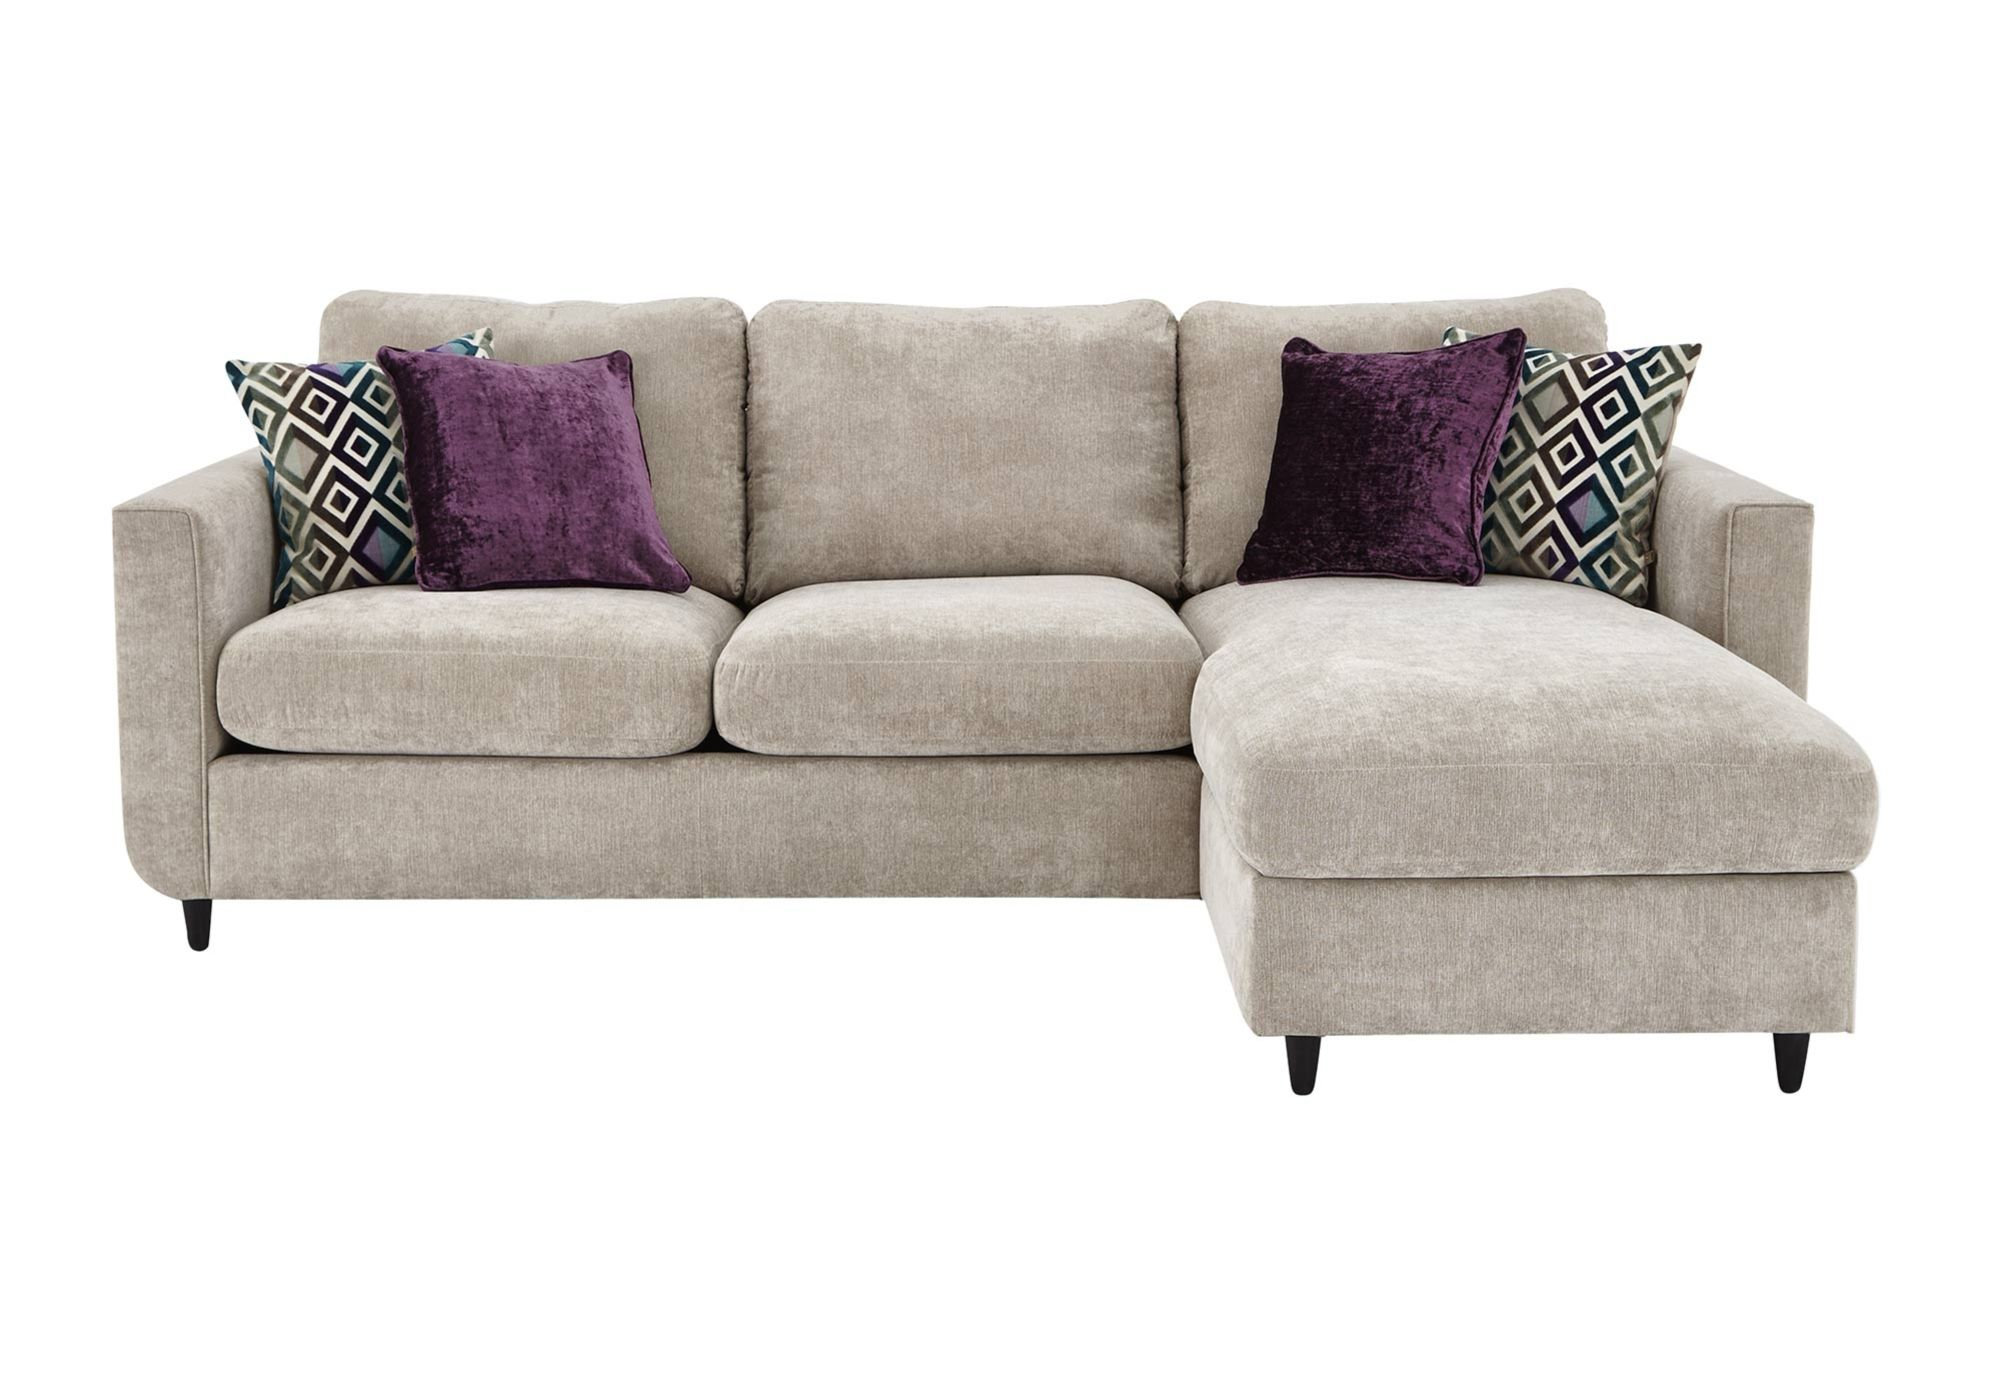 Esprit Chaise With Storage Sofa Bed With Storage Chaise Sofa Sofa Bed Design